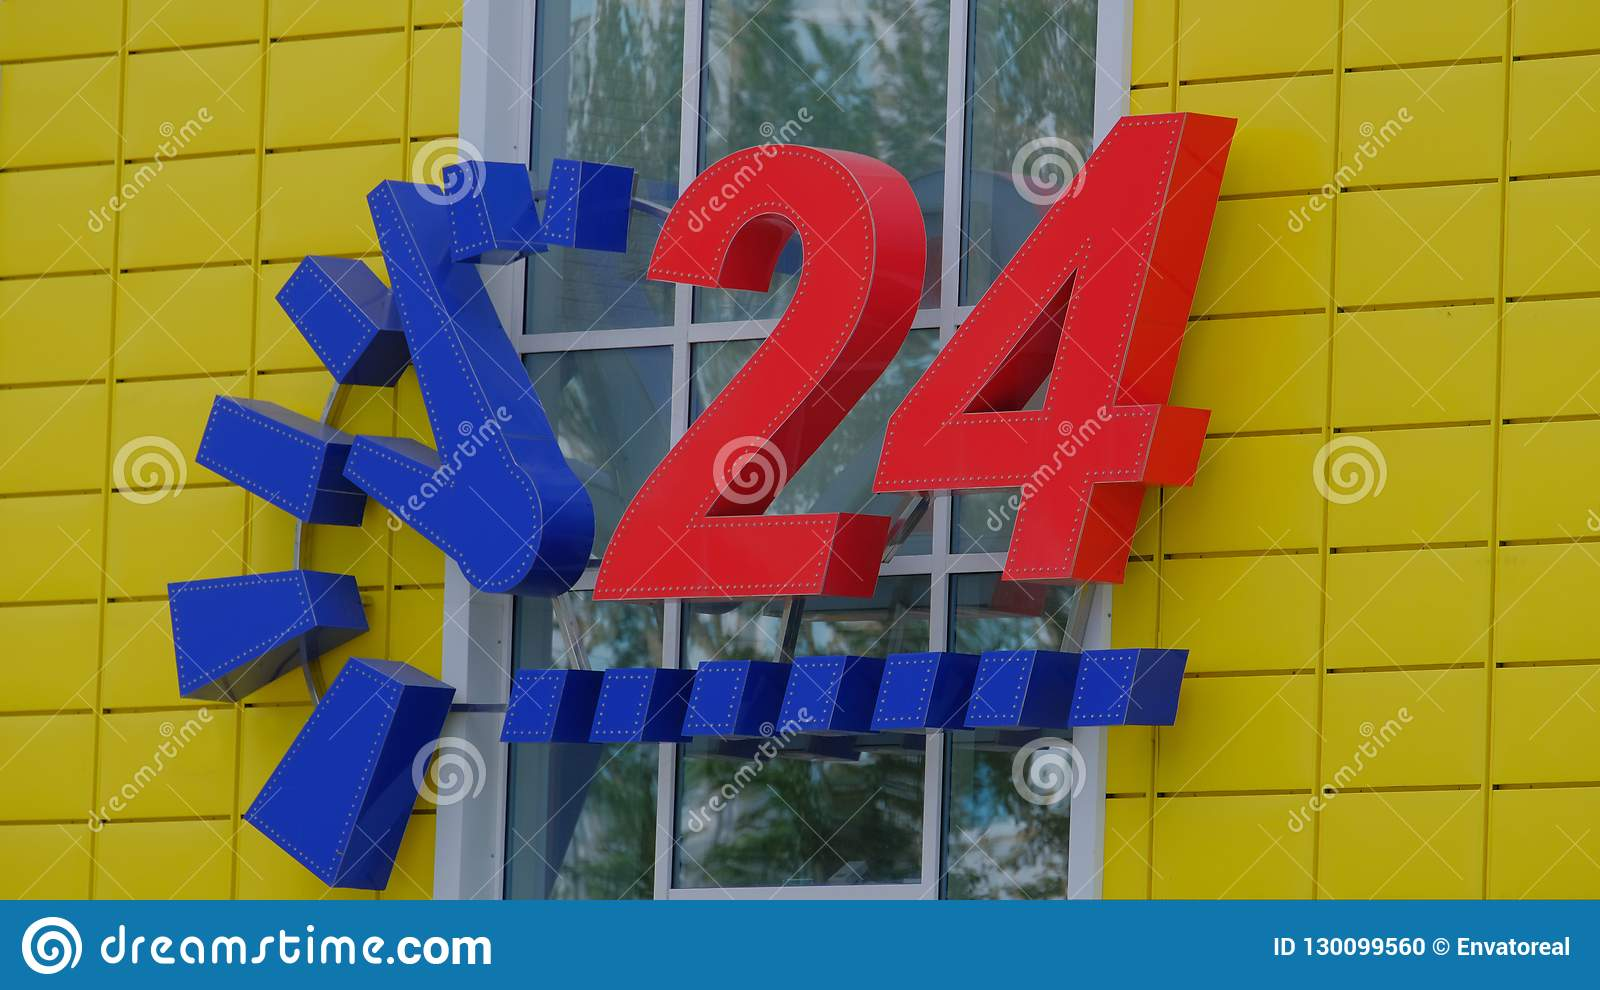 Big Red Store >> Yellow Convenience Store With A Blue Clock And Big Red